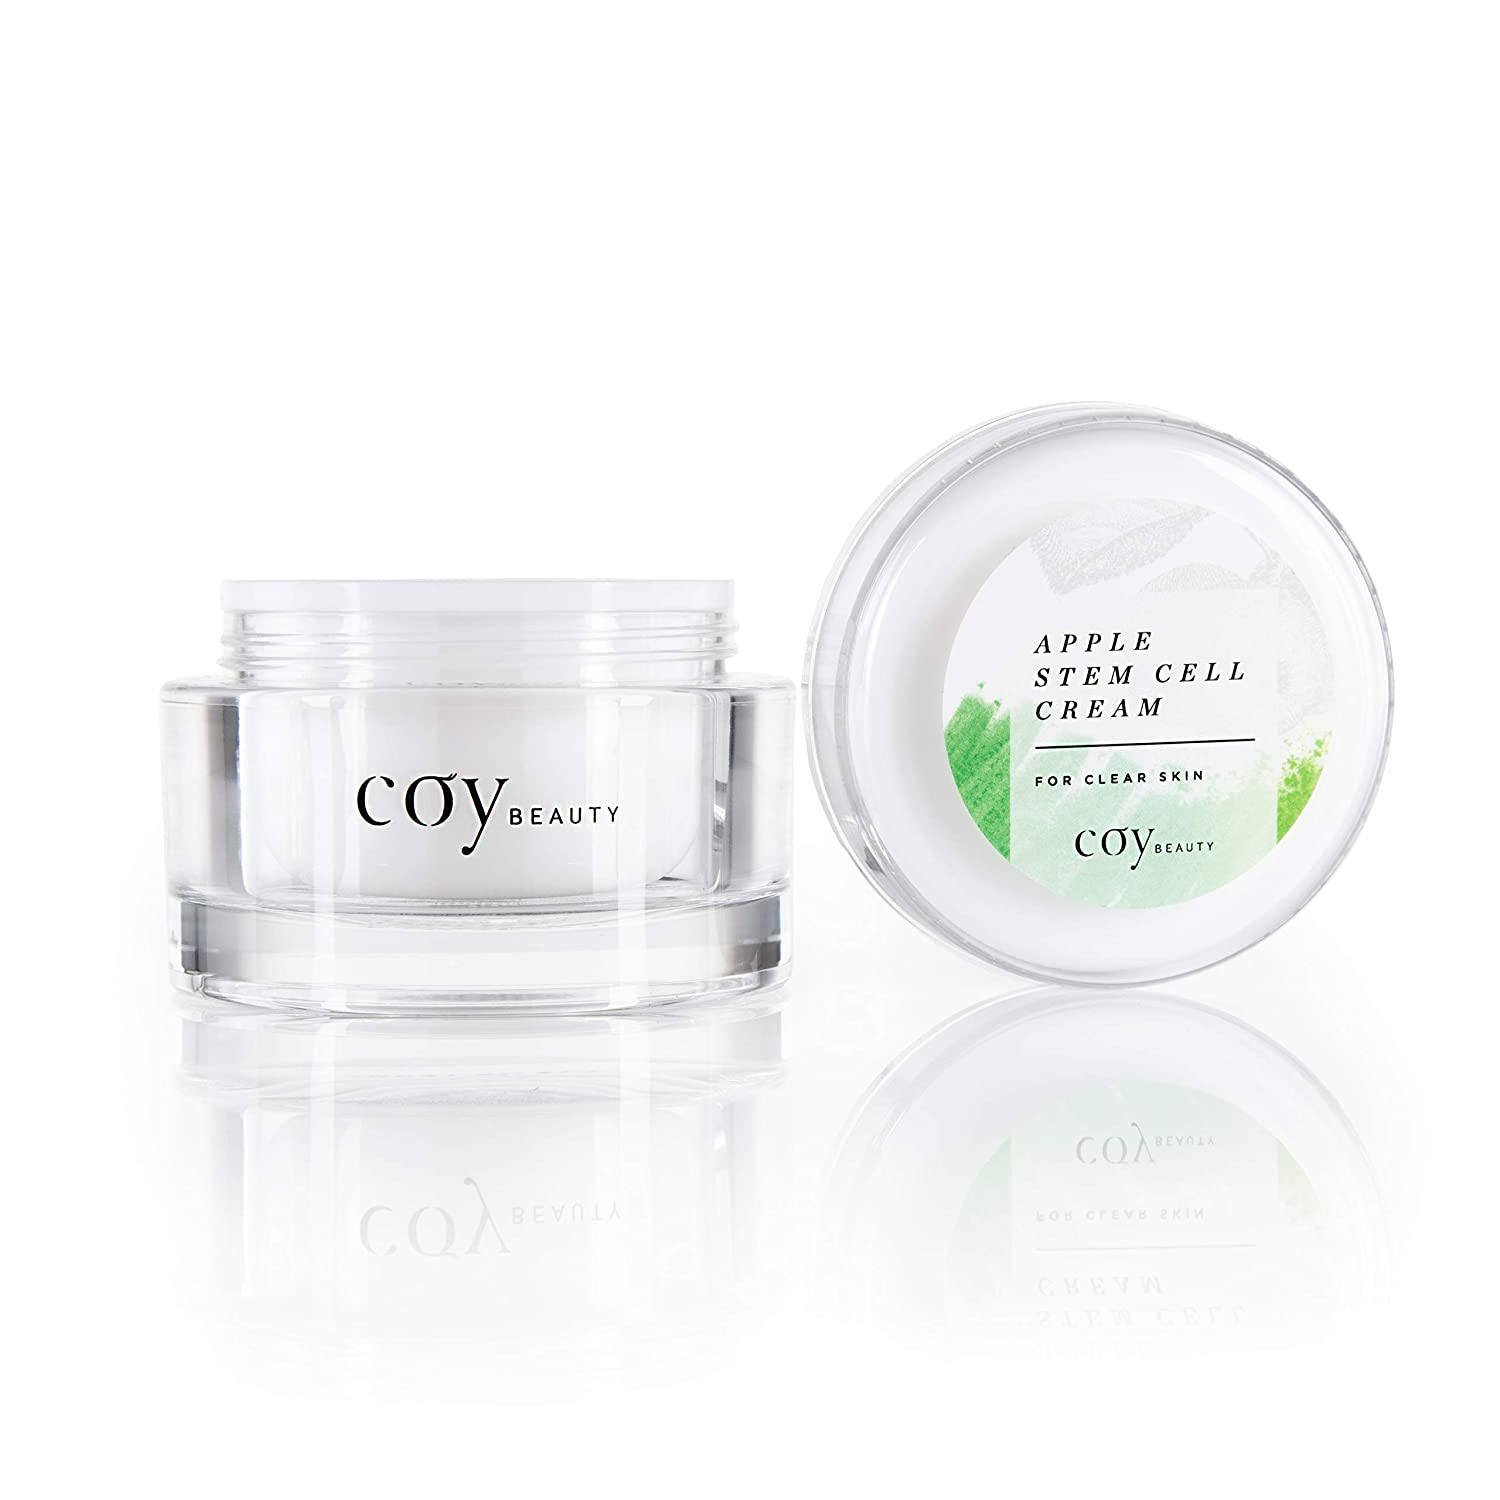 Facial Cream - Stem Cell Moisturizer, Anti-Wrinkle Serum for Face, Neck and Under Eyes, Natural Extracts for Clear Skin, Unscented - Coy Beauty